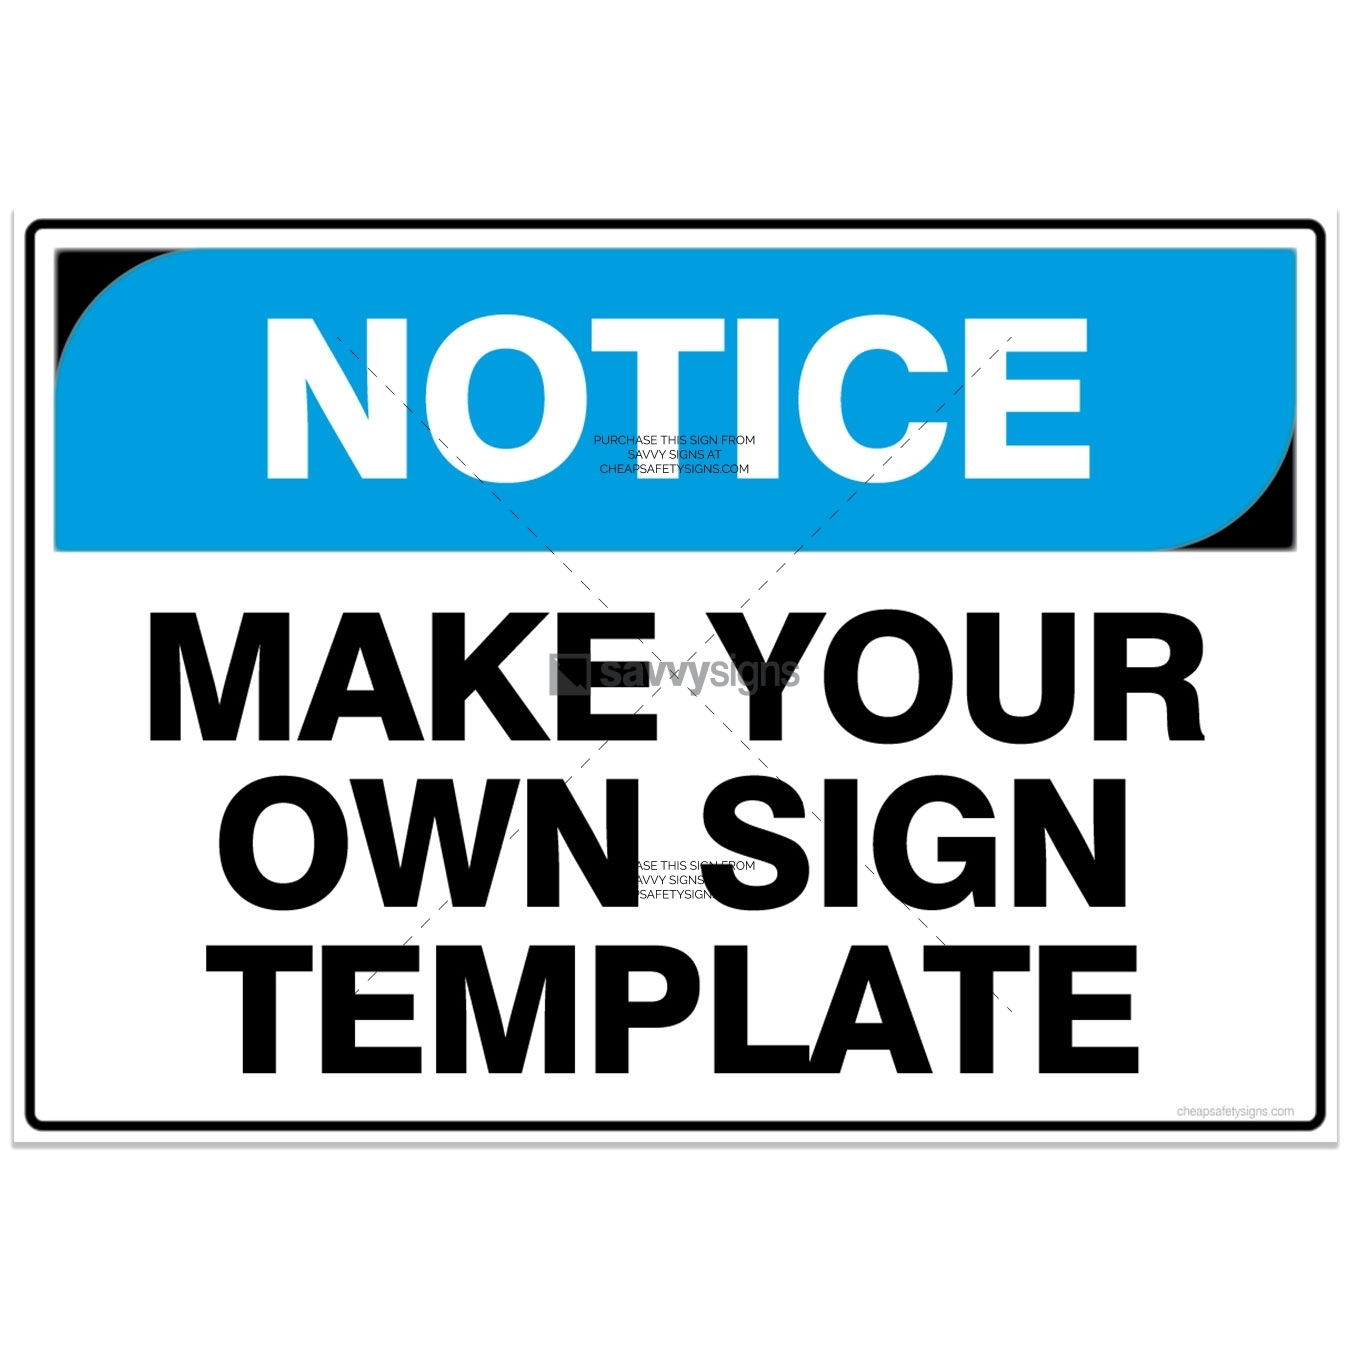 NOTICE Make your own sign template by Savvy Signs